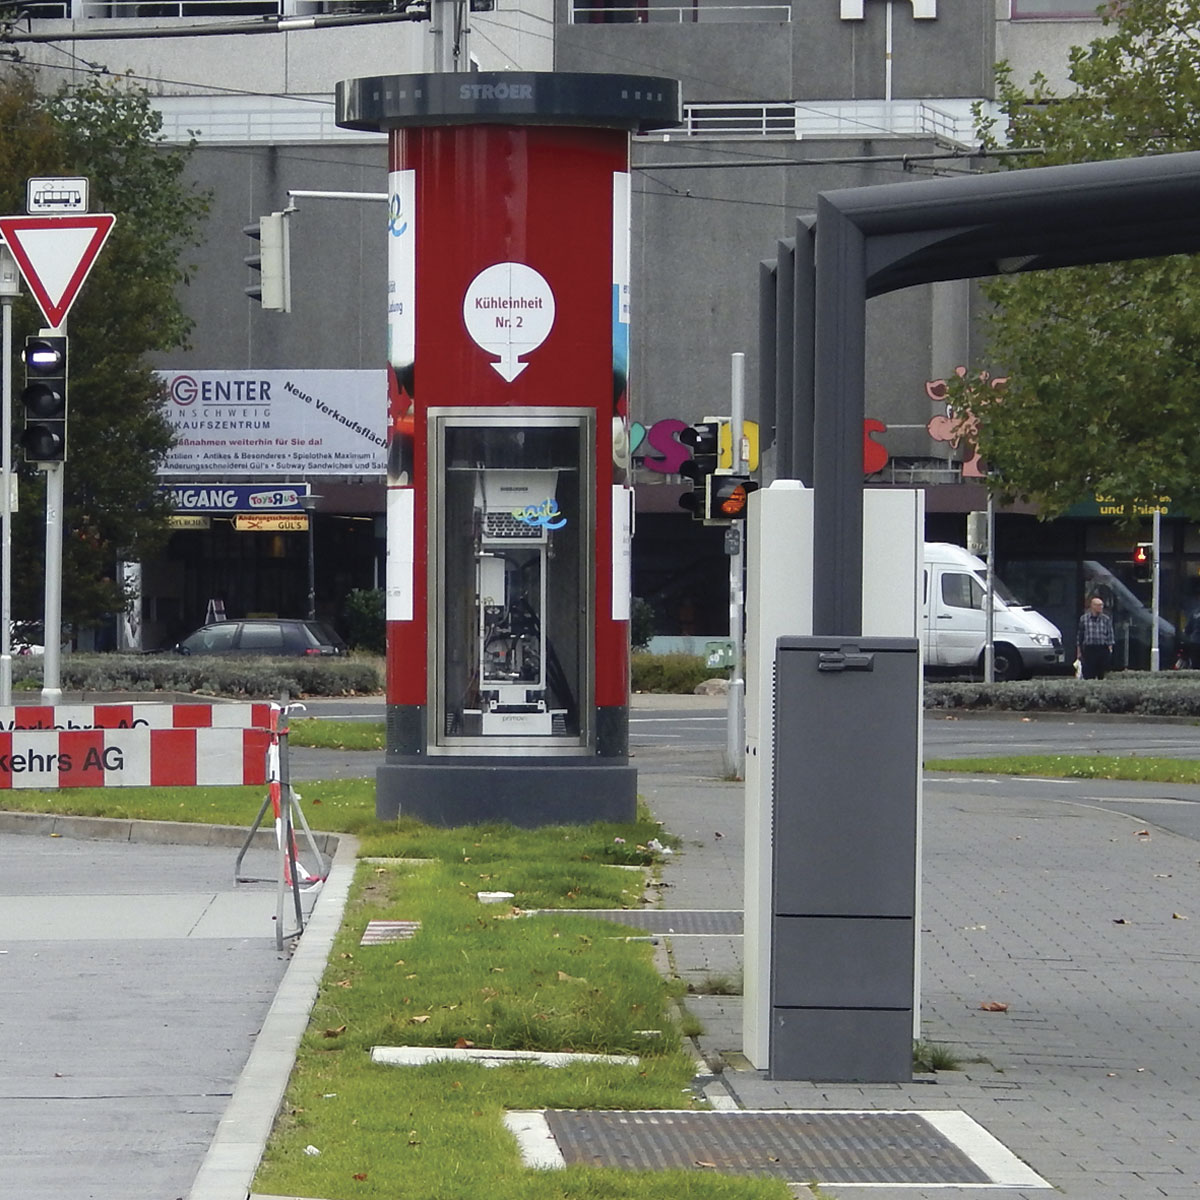 Braunschweig's induction charging station